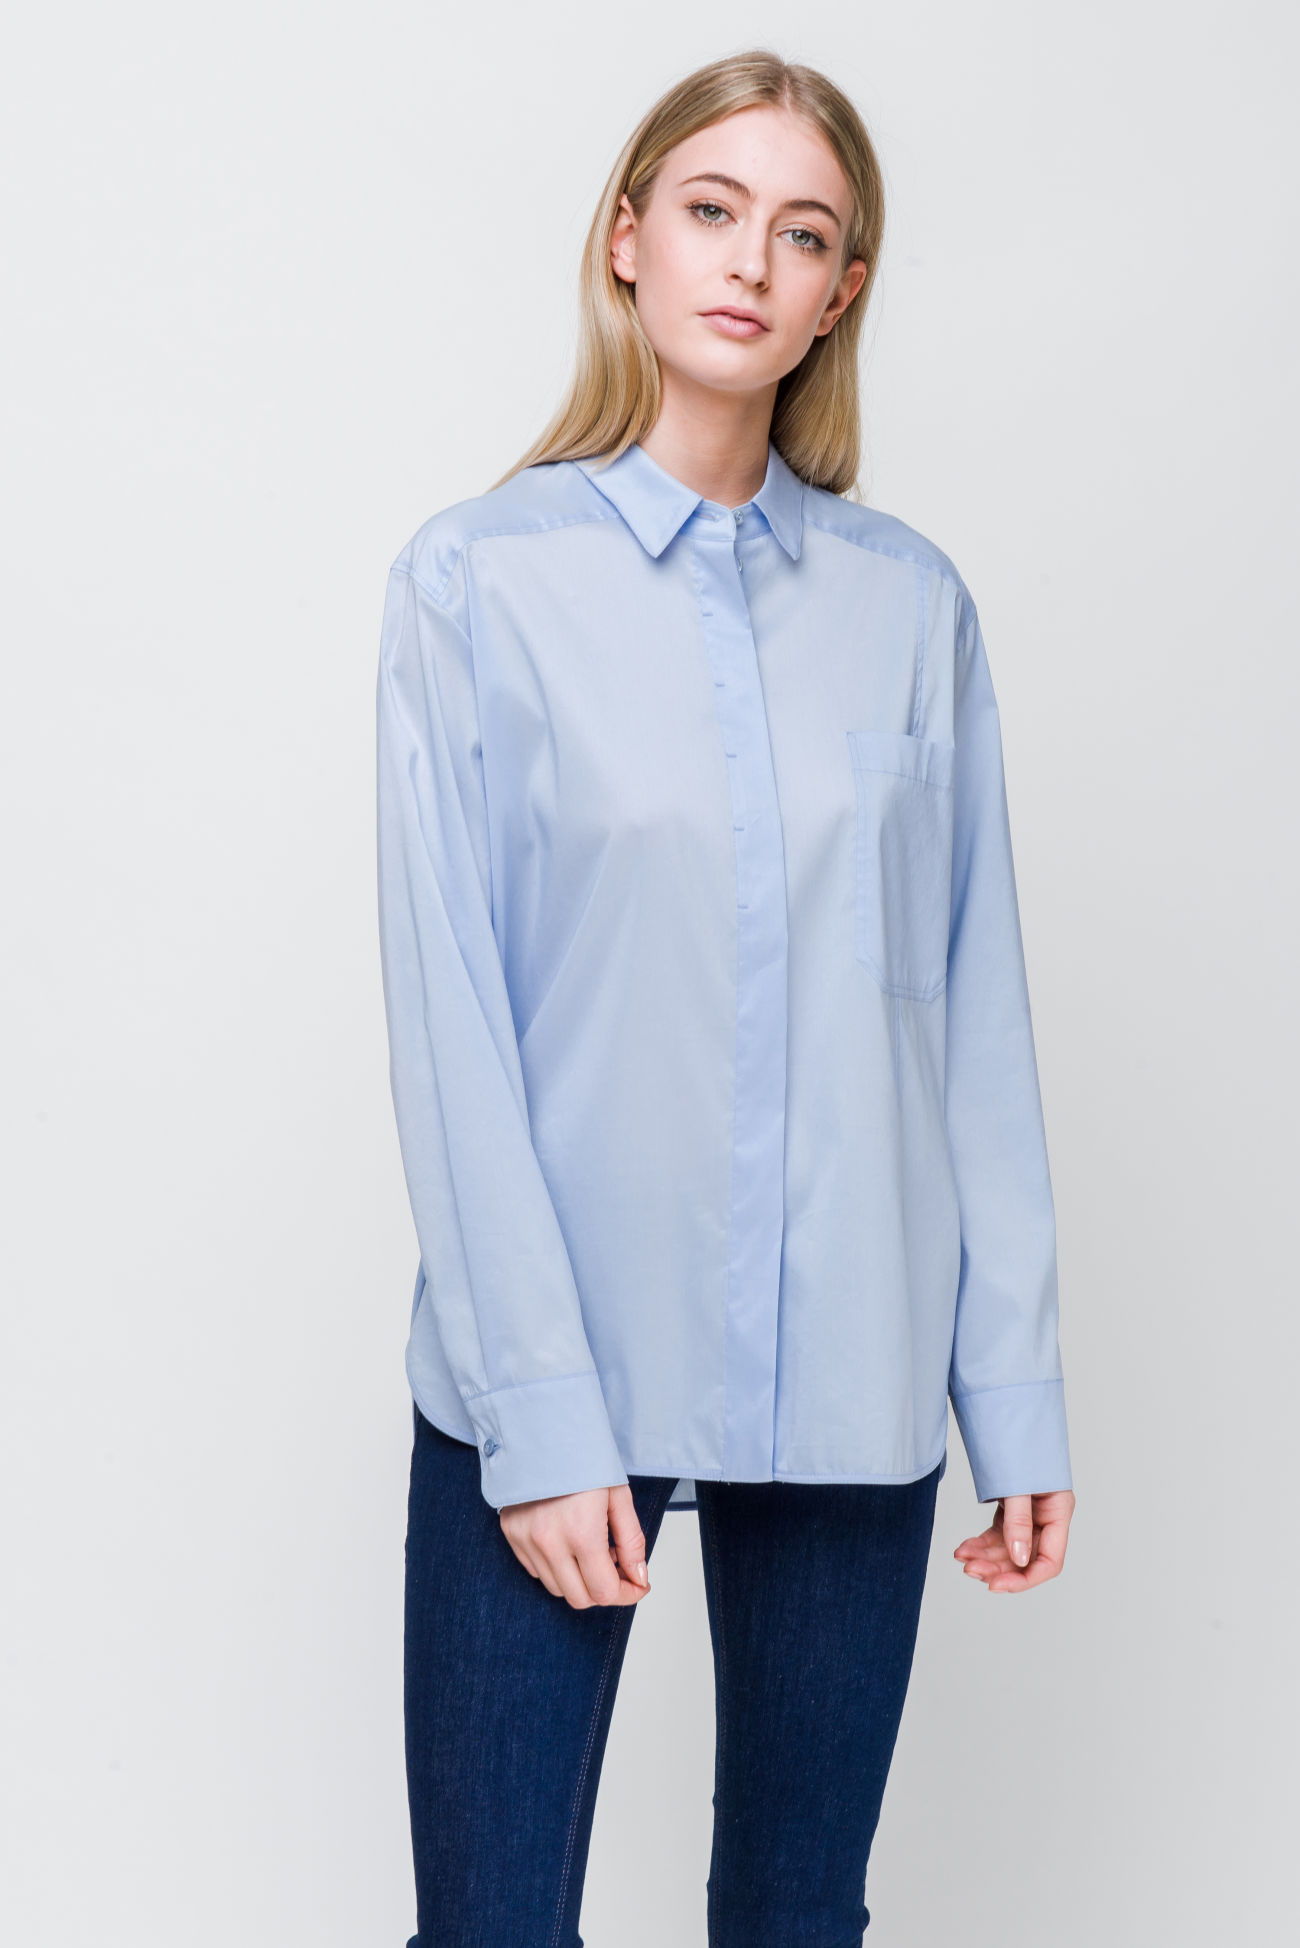 Iconic STRENESSE blouse